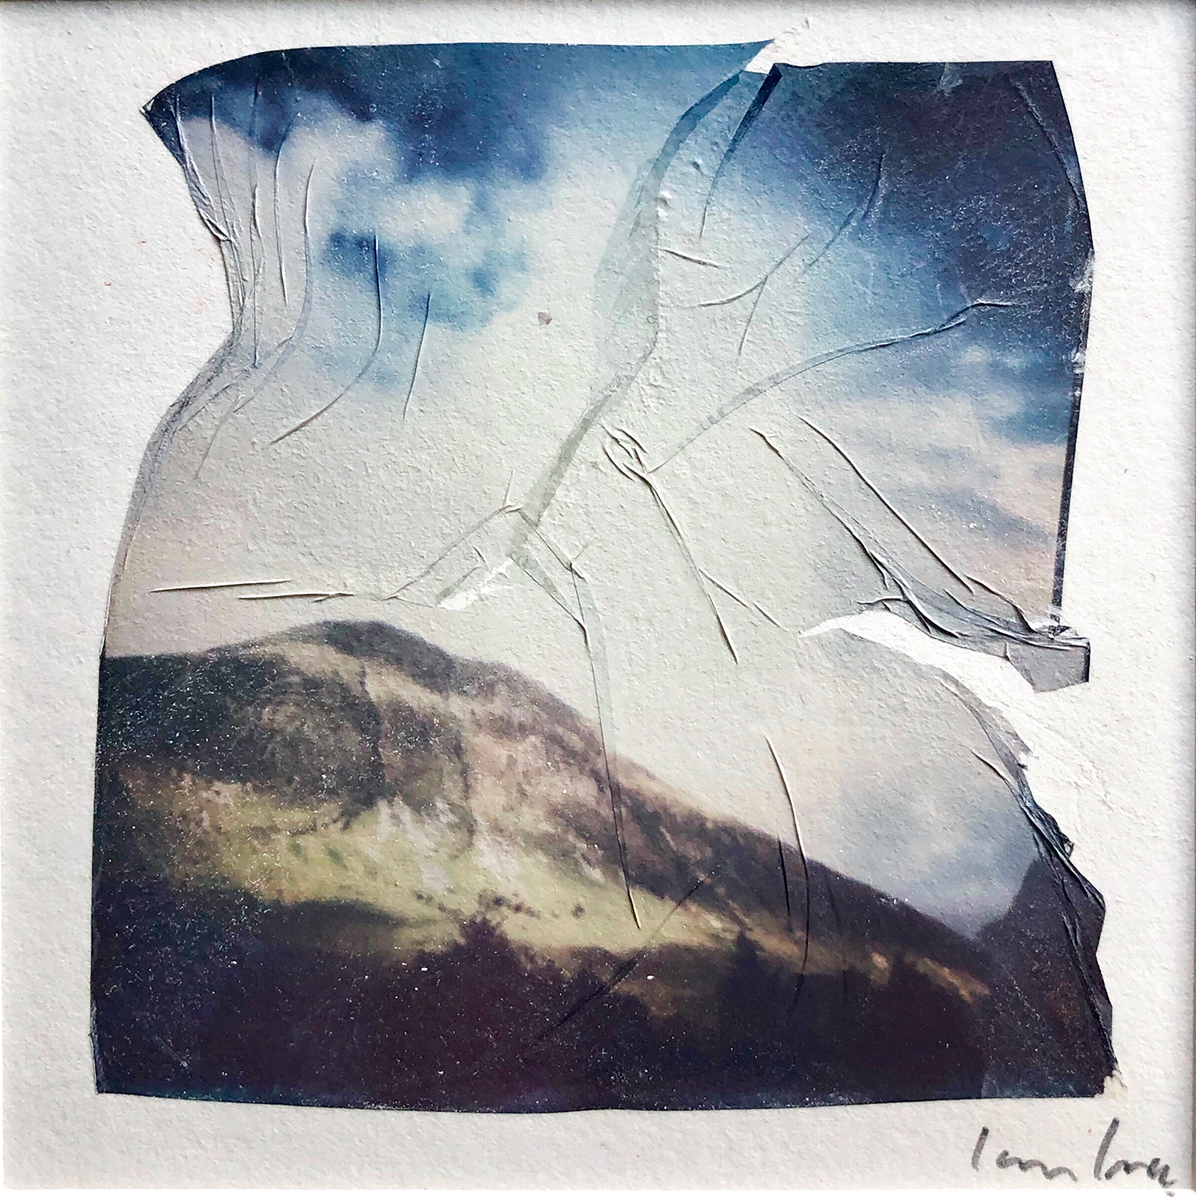 polaroid emulsion lift